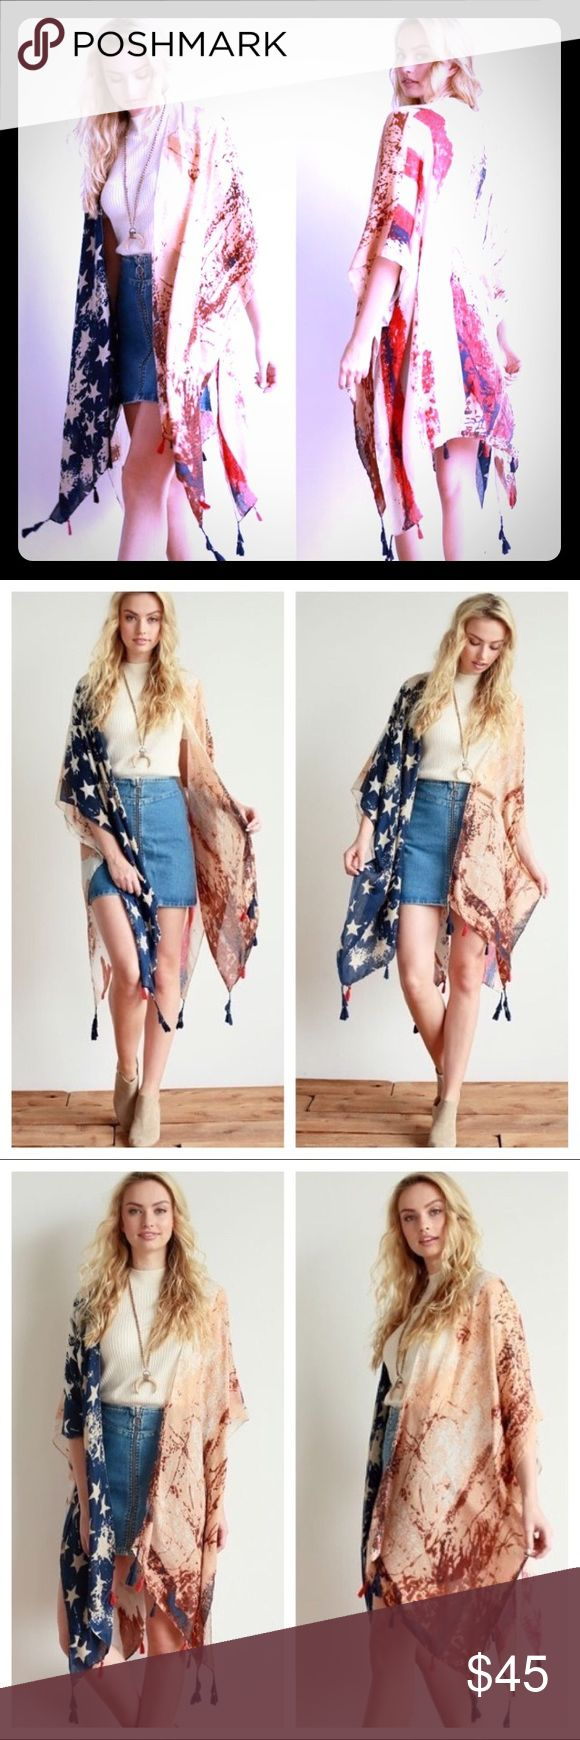 American Flag Kimono Large American Flag Kimono, just in time for Memorial Day weekend and July 4th! Wear with pride! Other